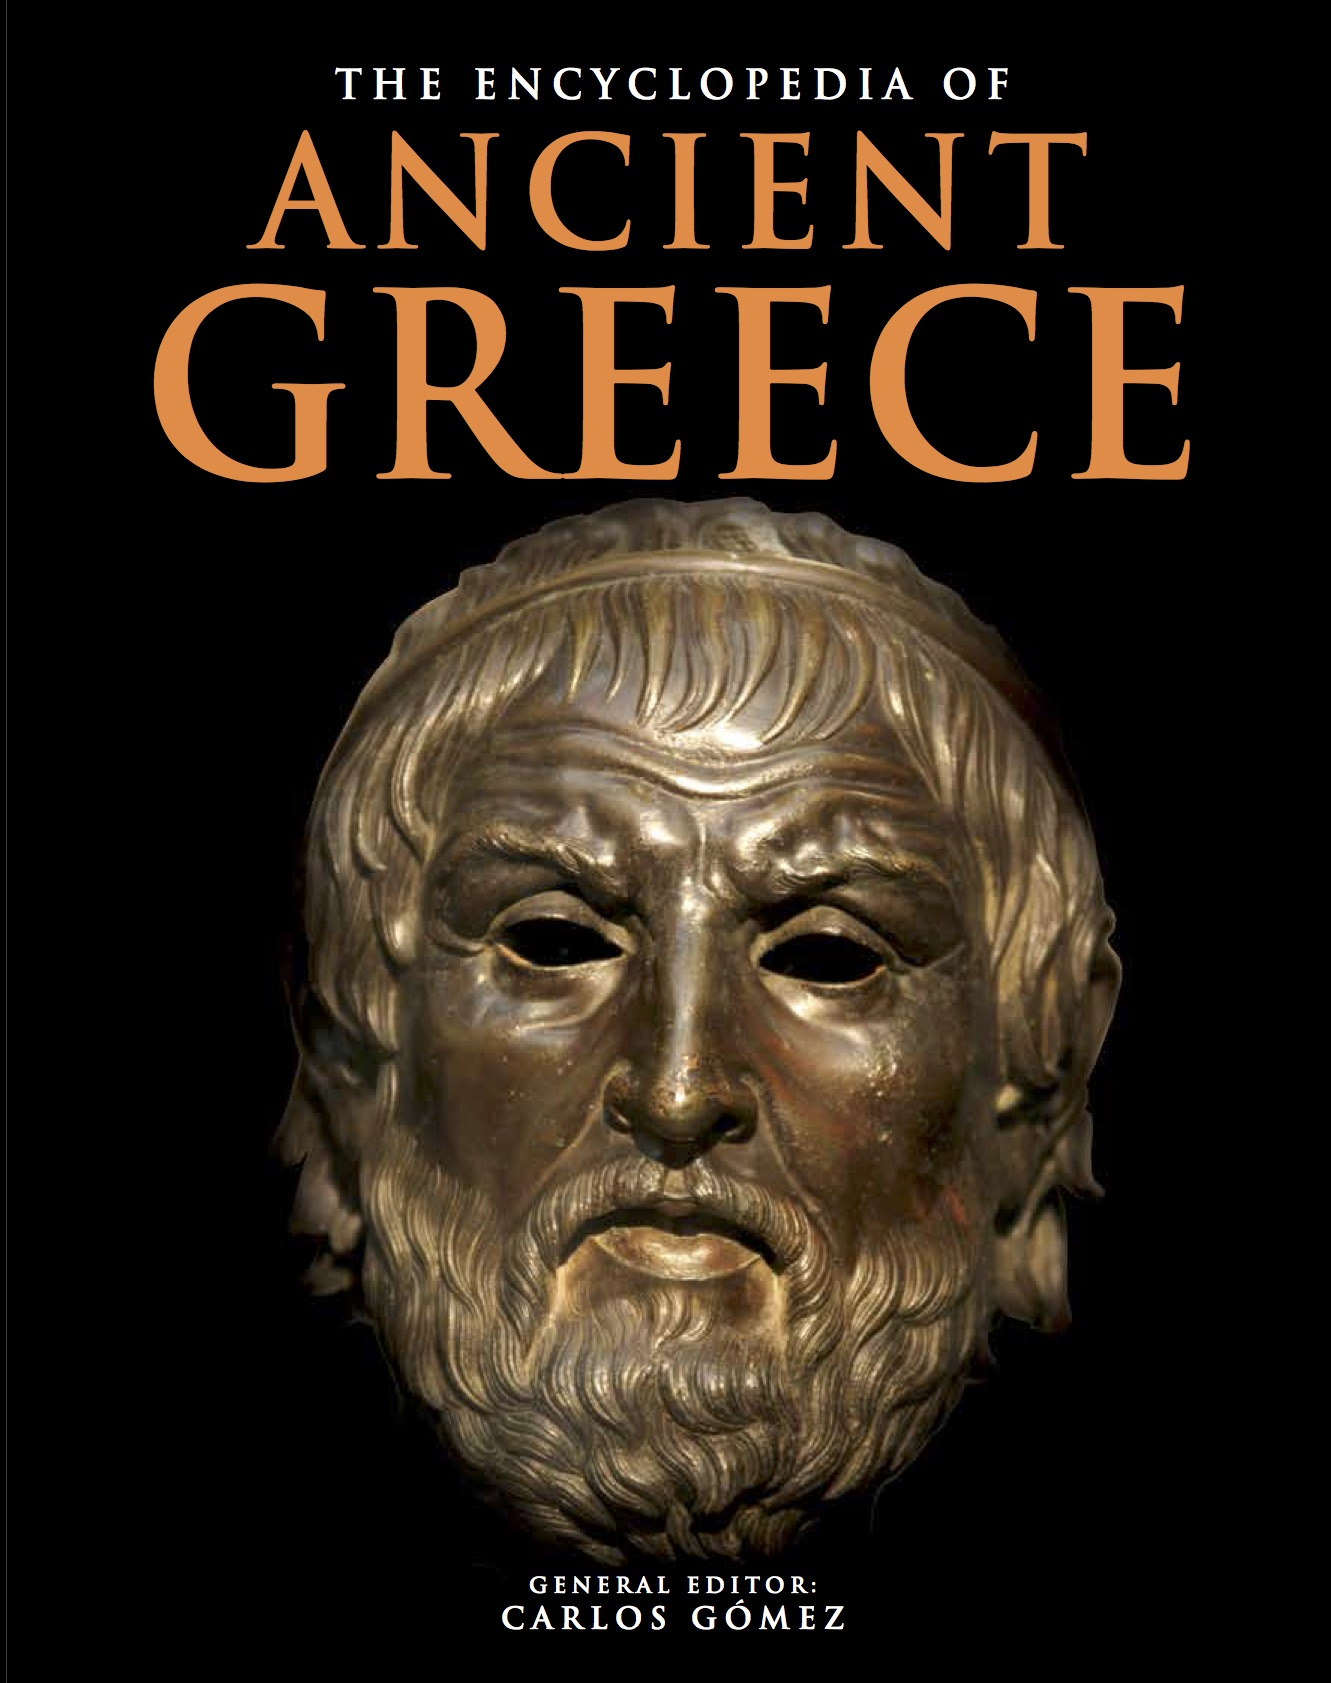 The Encyclopedia of Ancient Greece